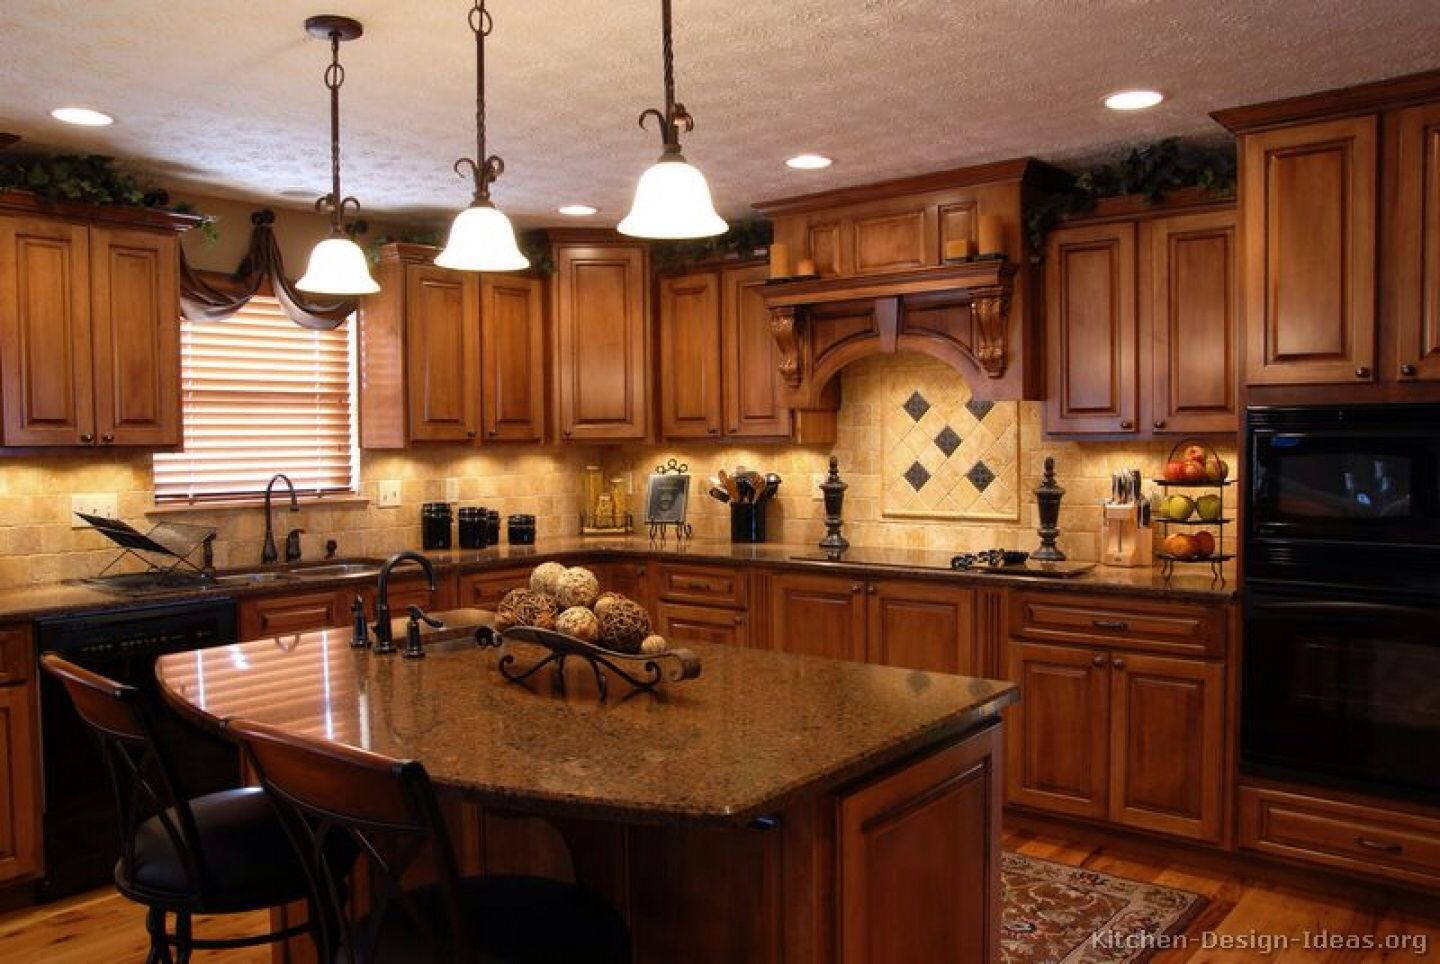 Image from http://housearquitectura.com/wp-content/uploads/tuscan-themed-kitchen-decor-decorating-ideas.jpg.